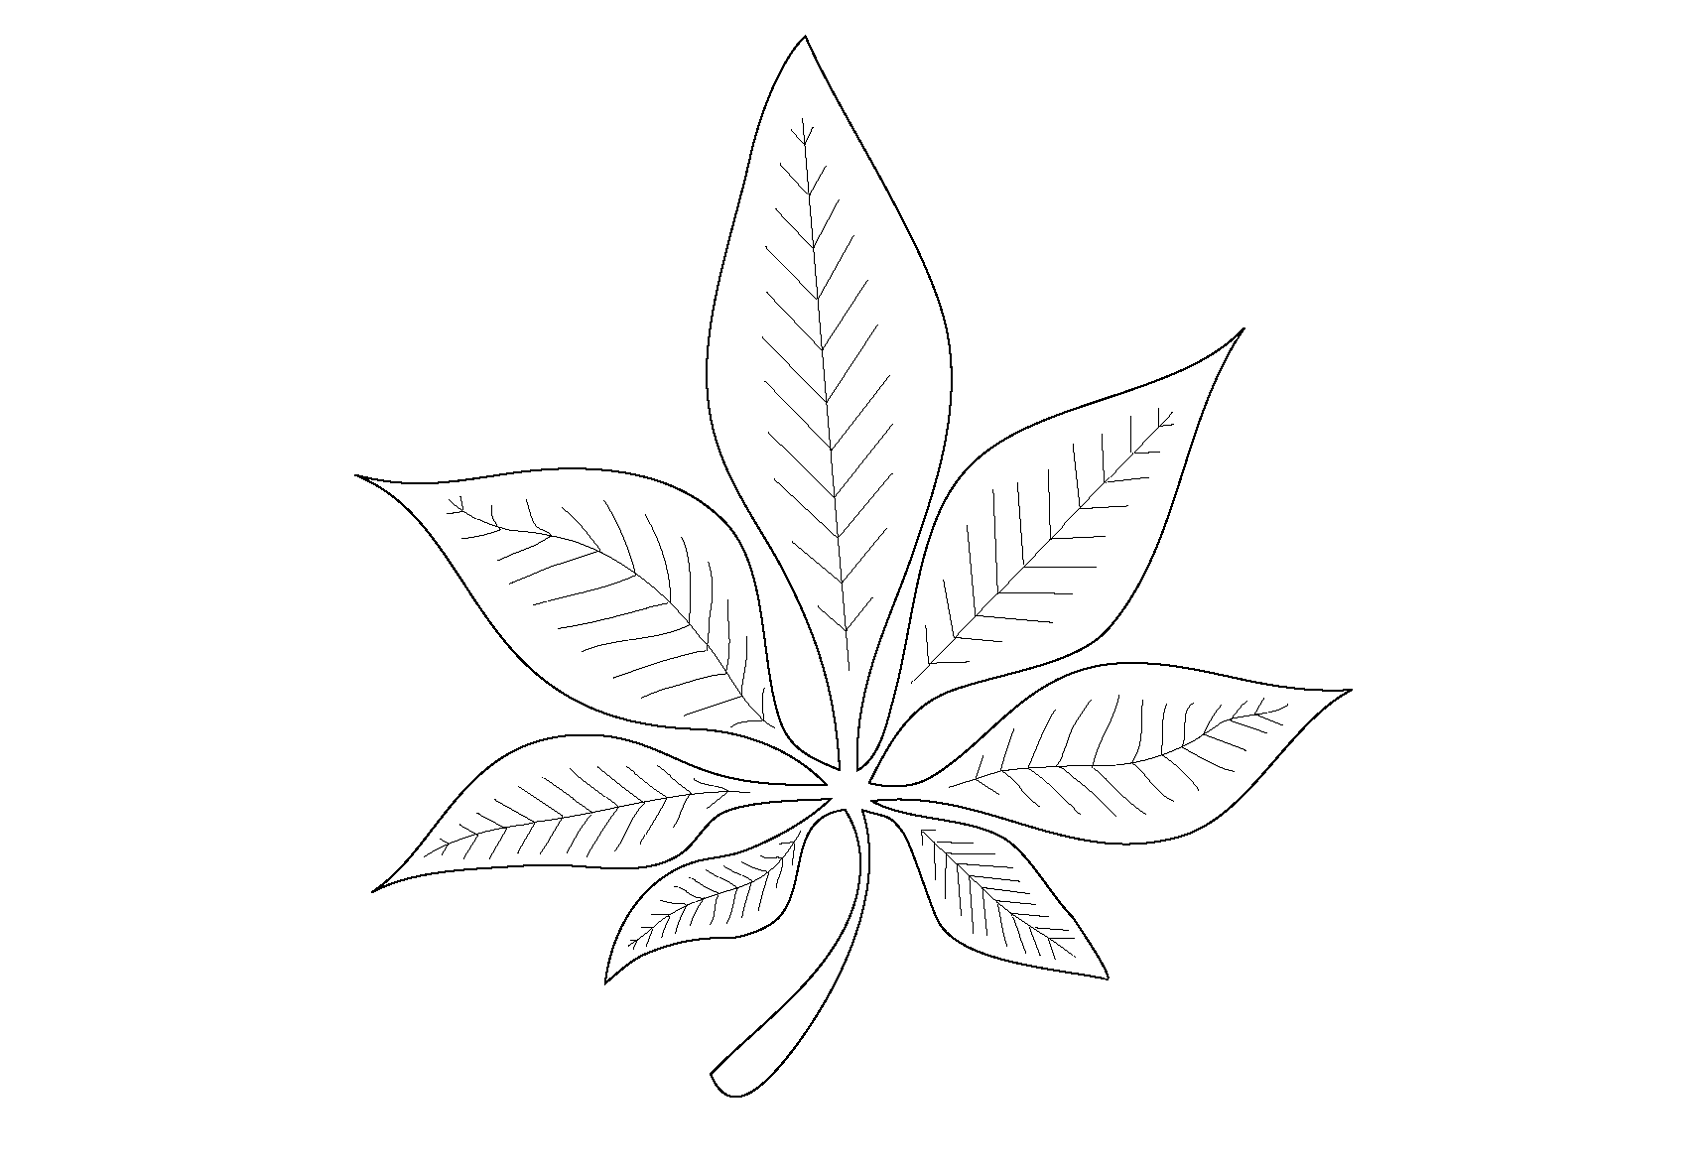 Img besides Slimemake together with Maxresdefault further Chicka Chicka Boom Boom Pin likewise Leaf Coloring Page Preschool. on preschool shapes